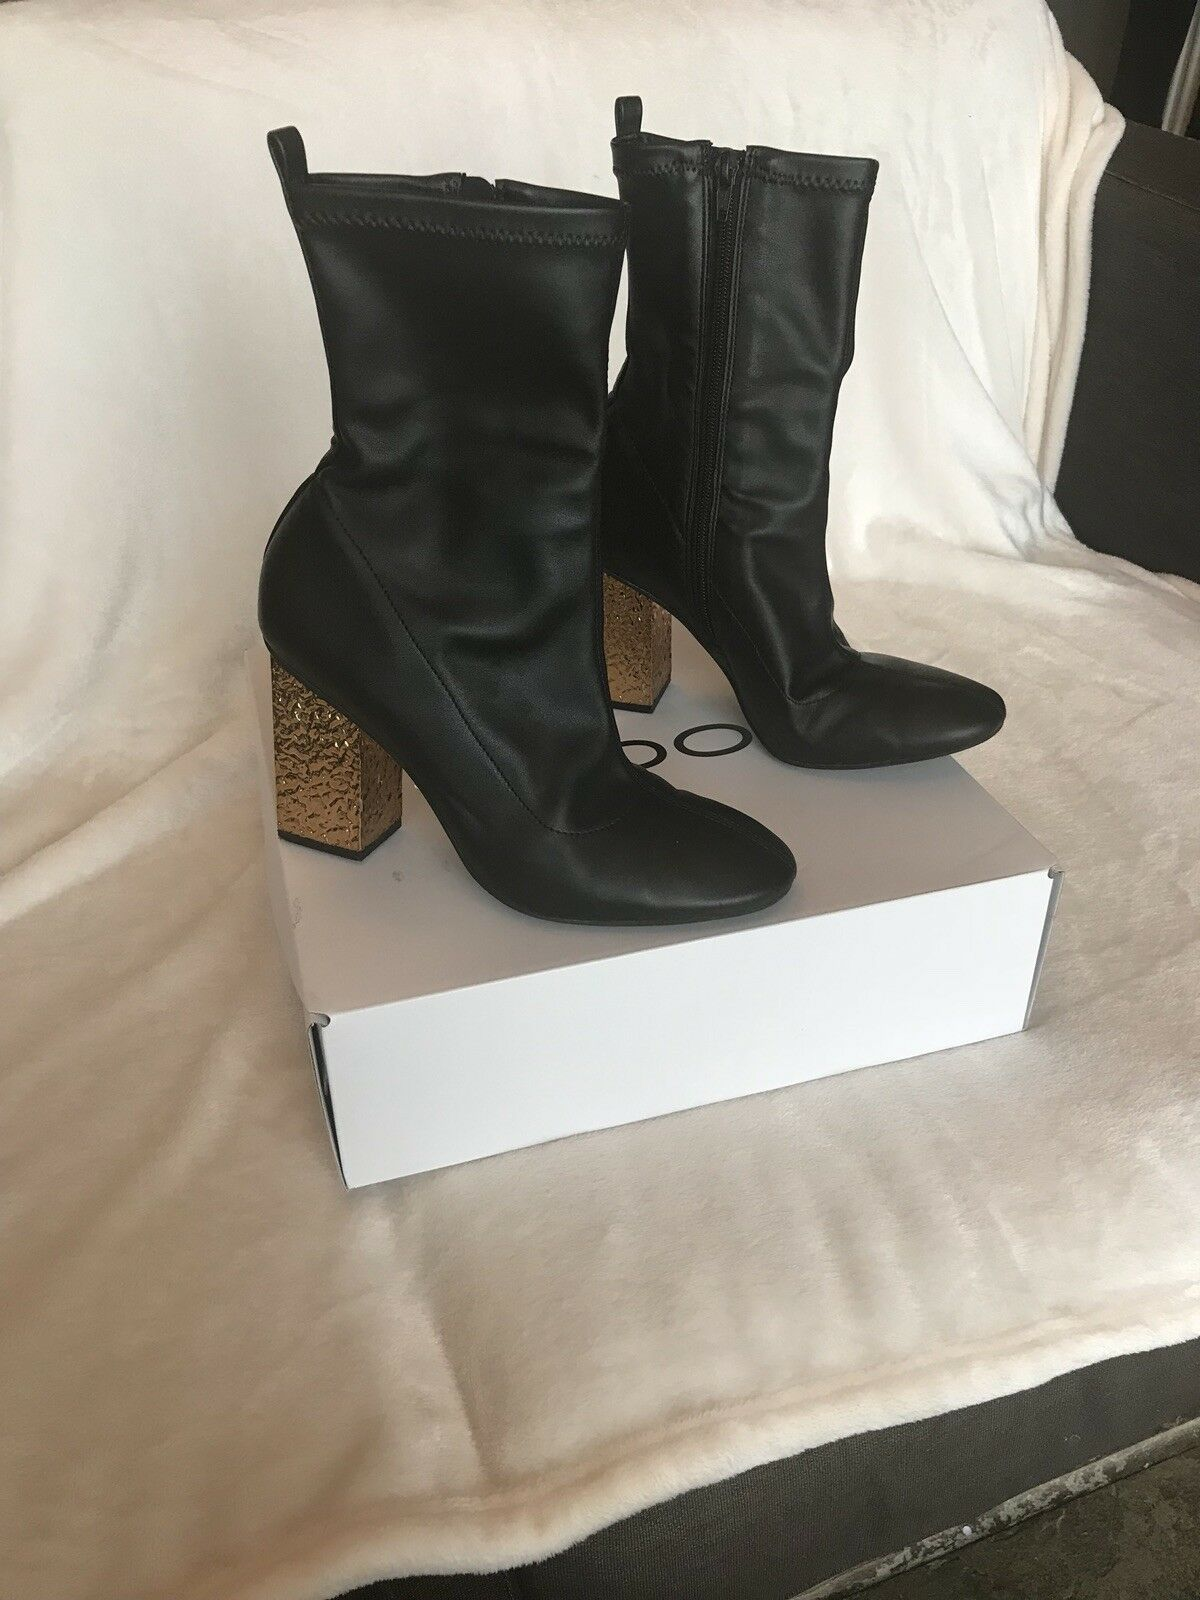 Black Ankle Boots From Topshop